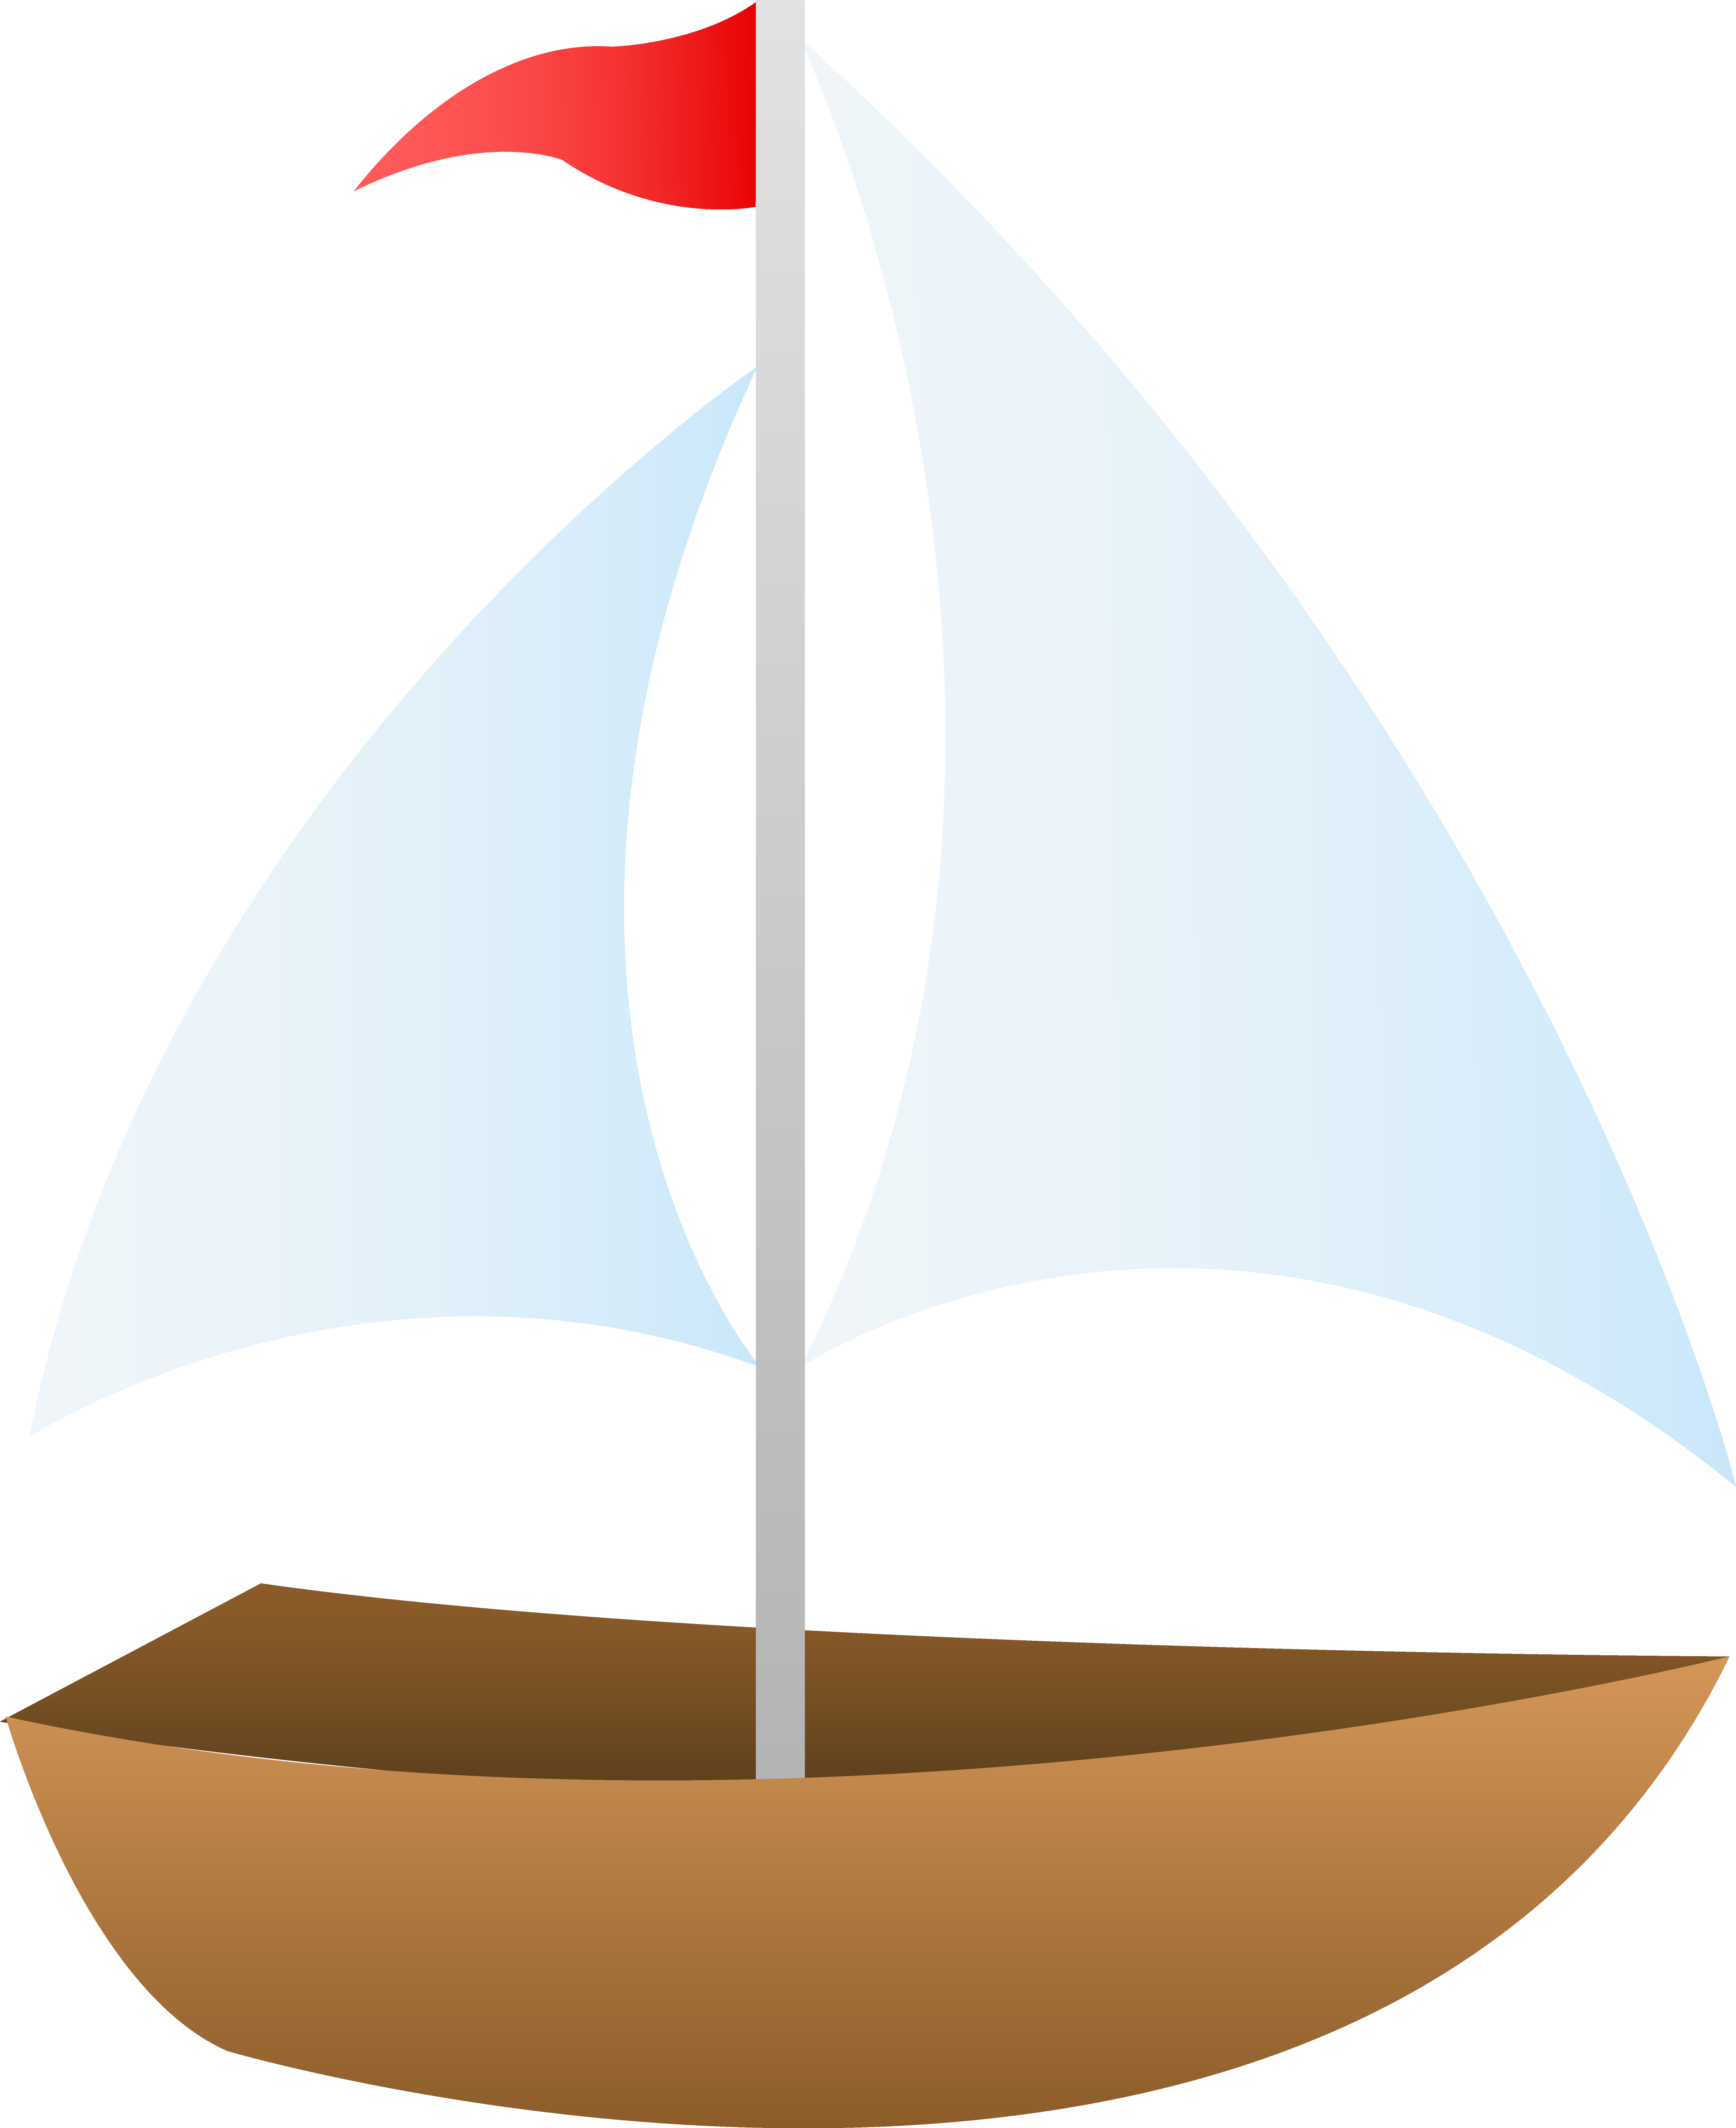 Sailing Ship clipart cute Clip on Sail Boat Free